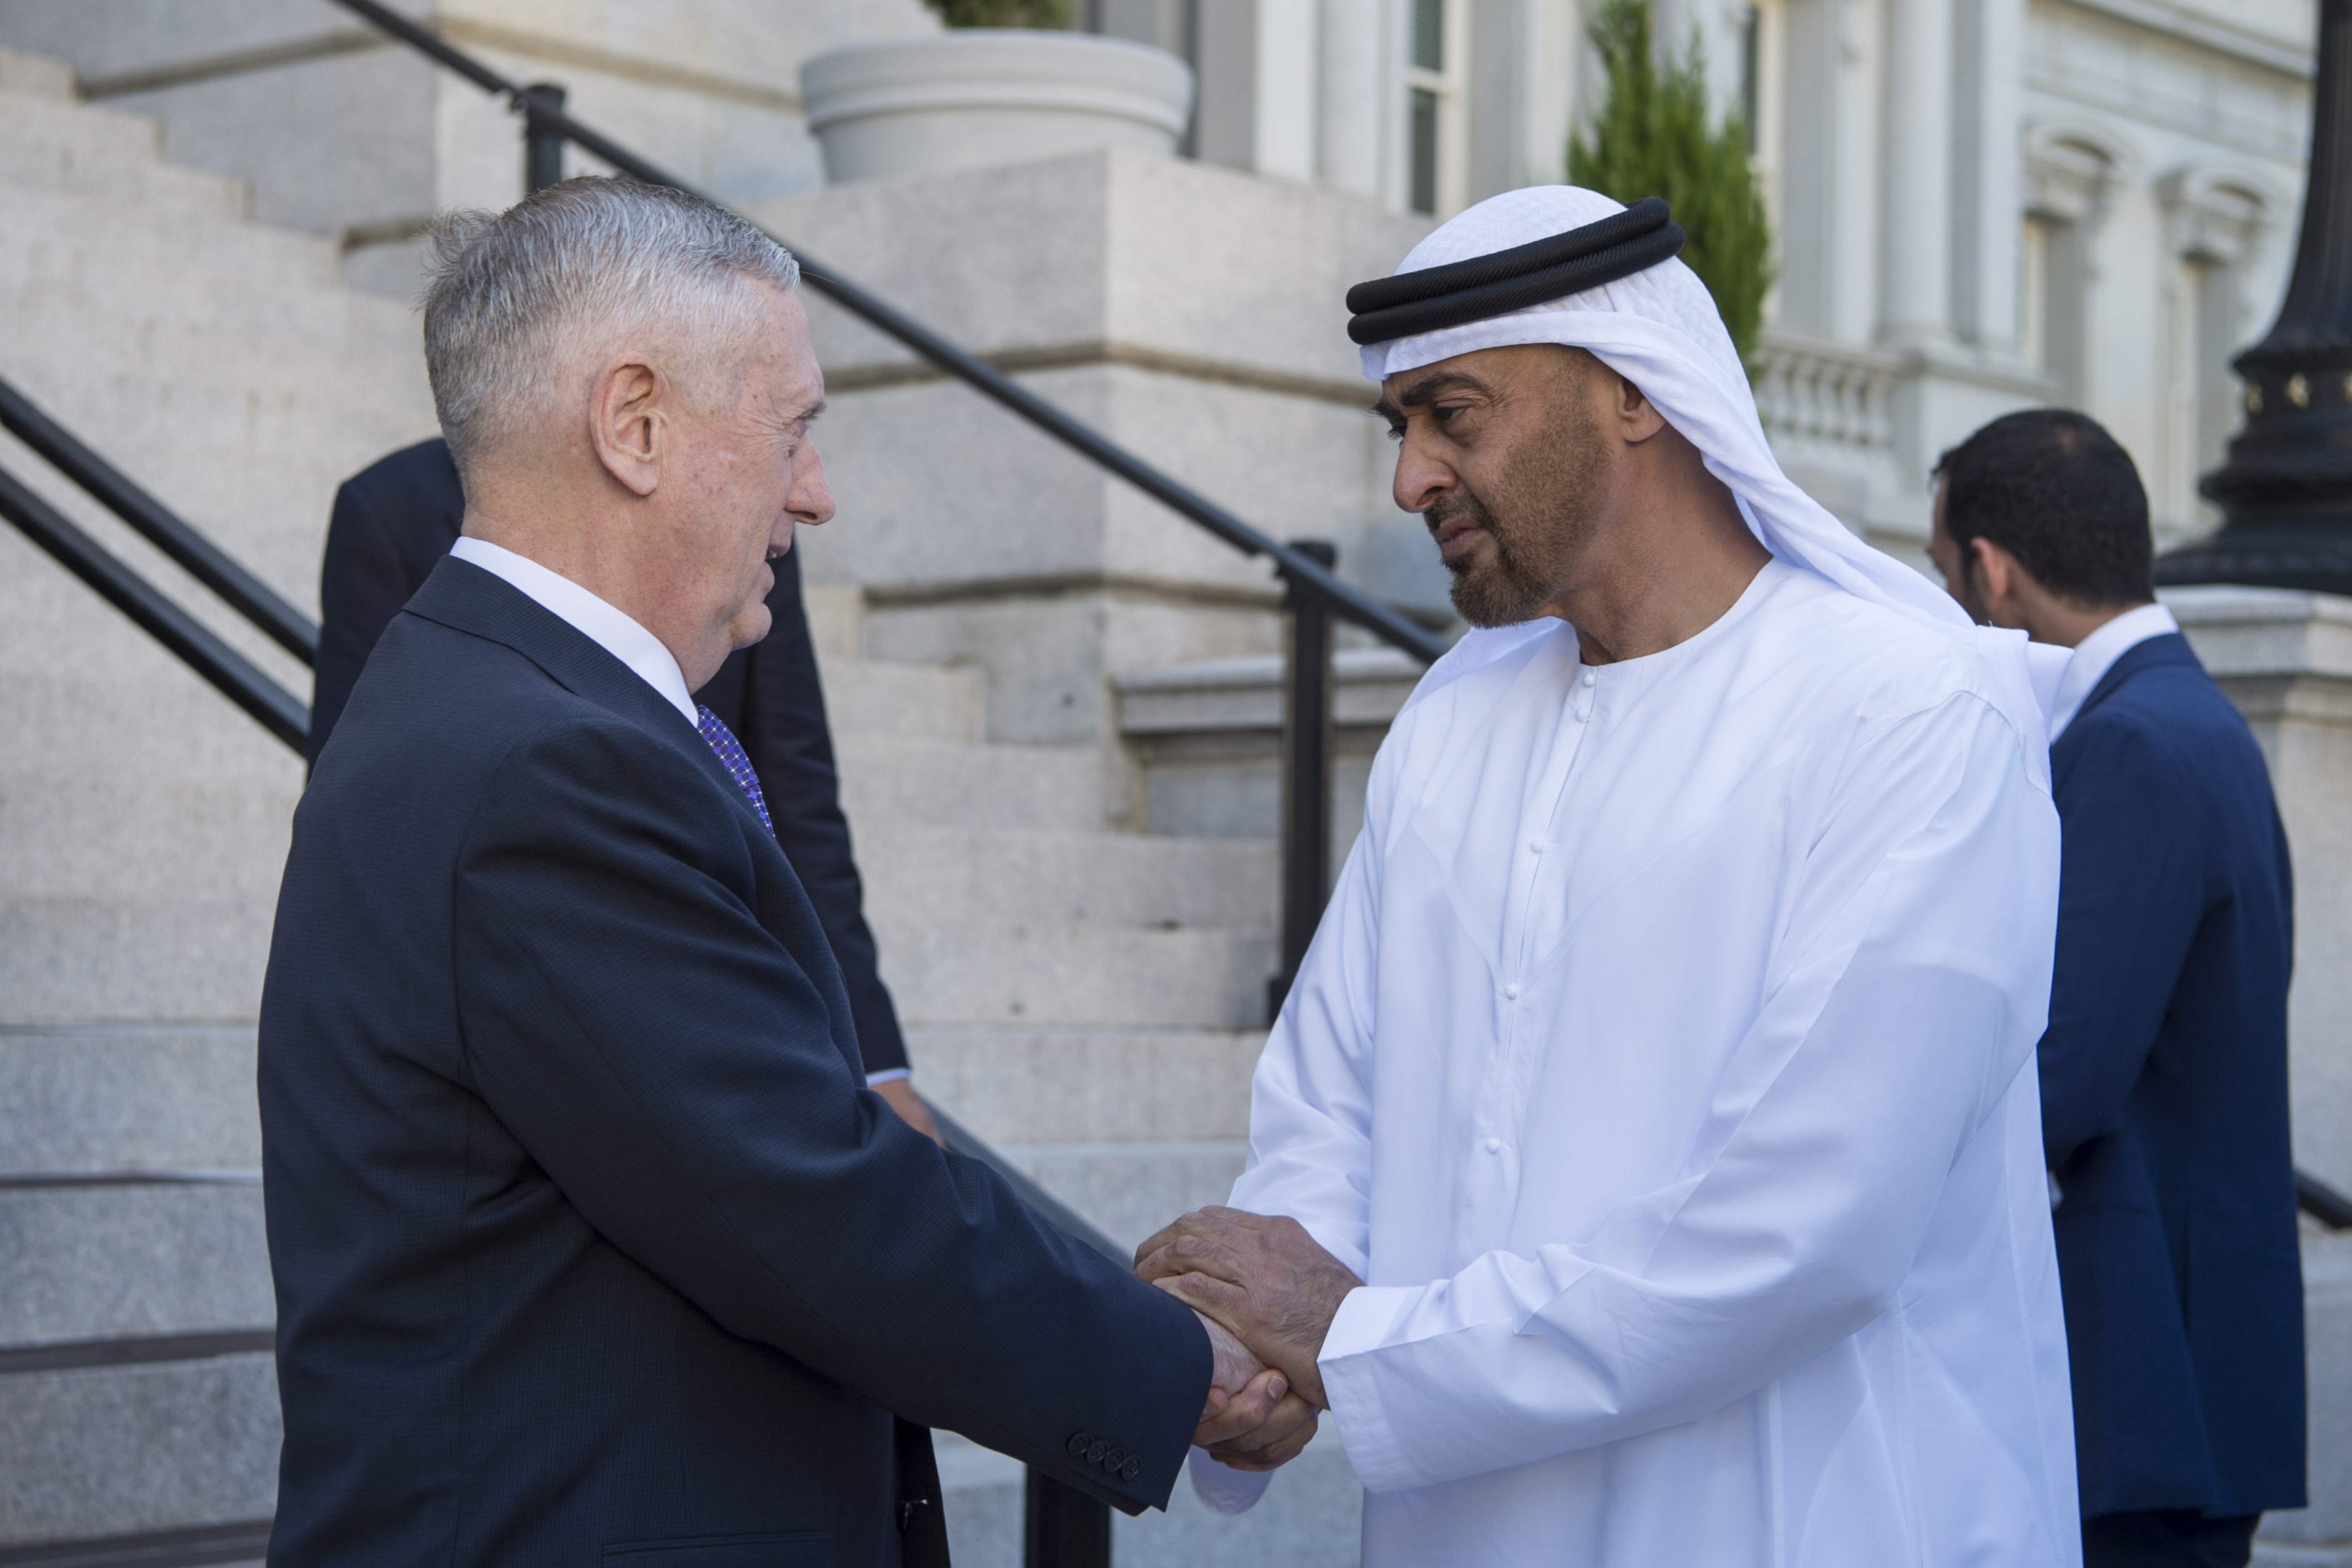 Defense Secretary Jim Mattis meets with Crown Prince Mohammed bin Zayed al Nahyan:DoD photo by Air Force Tech. Sgt. Brigitte N. Brantley